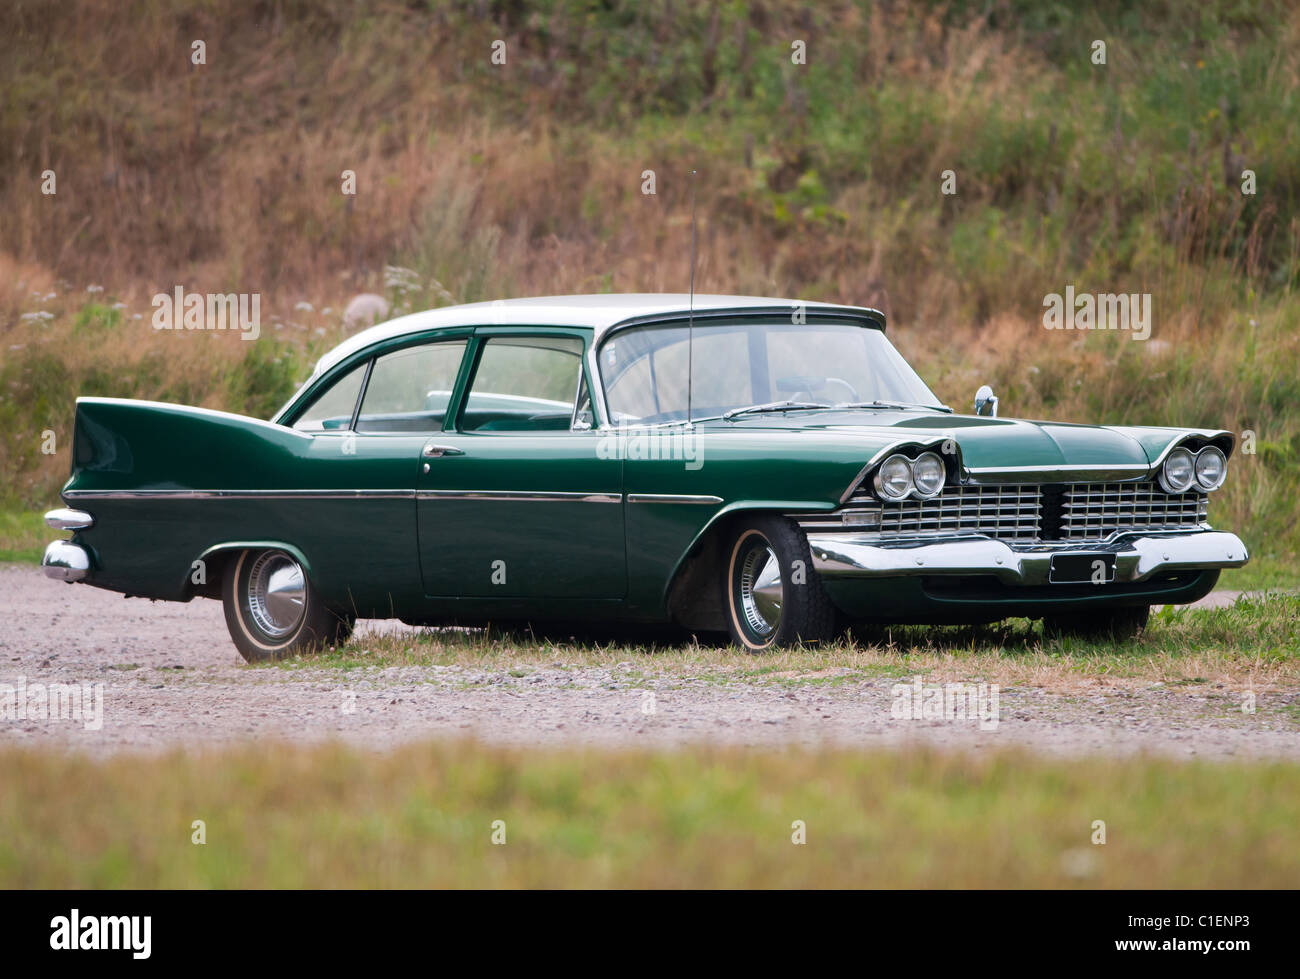 Plymouth Belvedere Stock Photos Images 1950 To 1955 Cars Classic American Car Fury 1958 Image